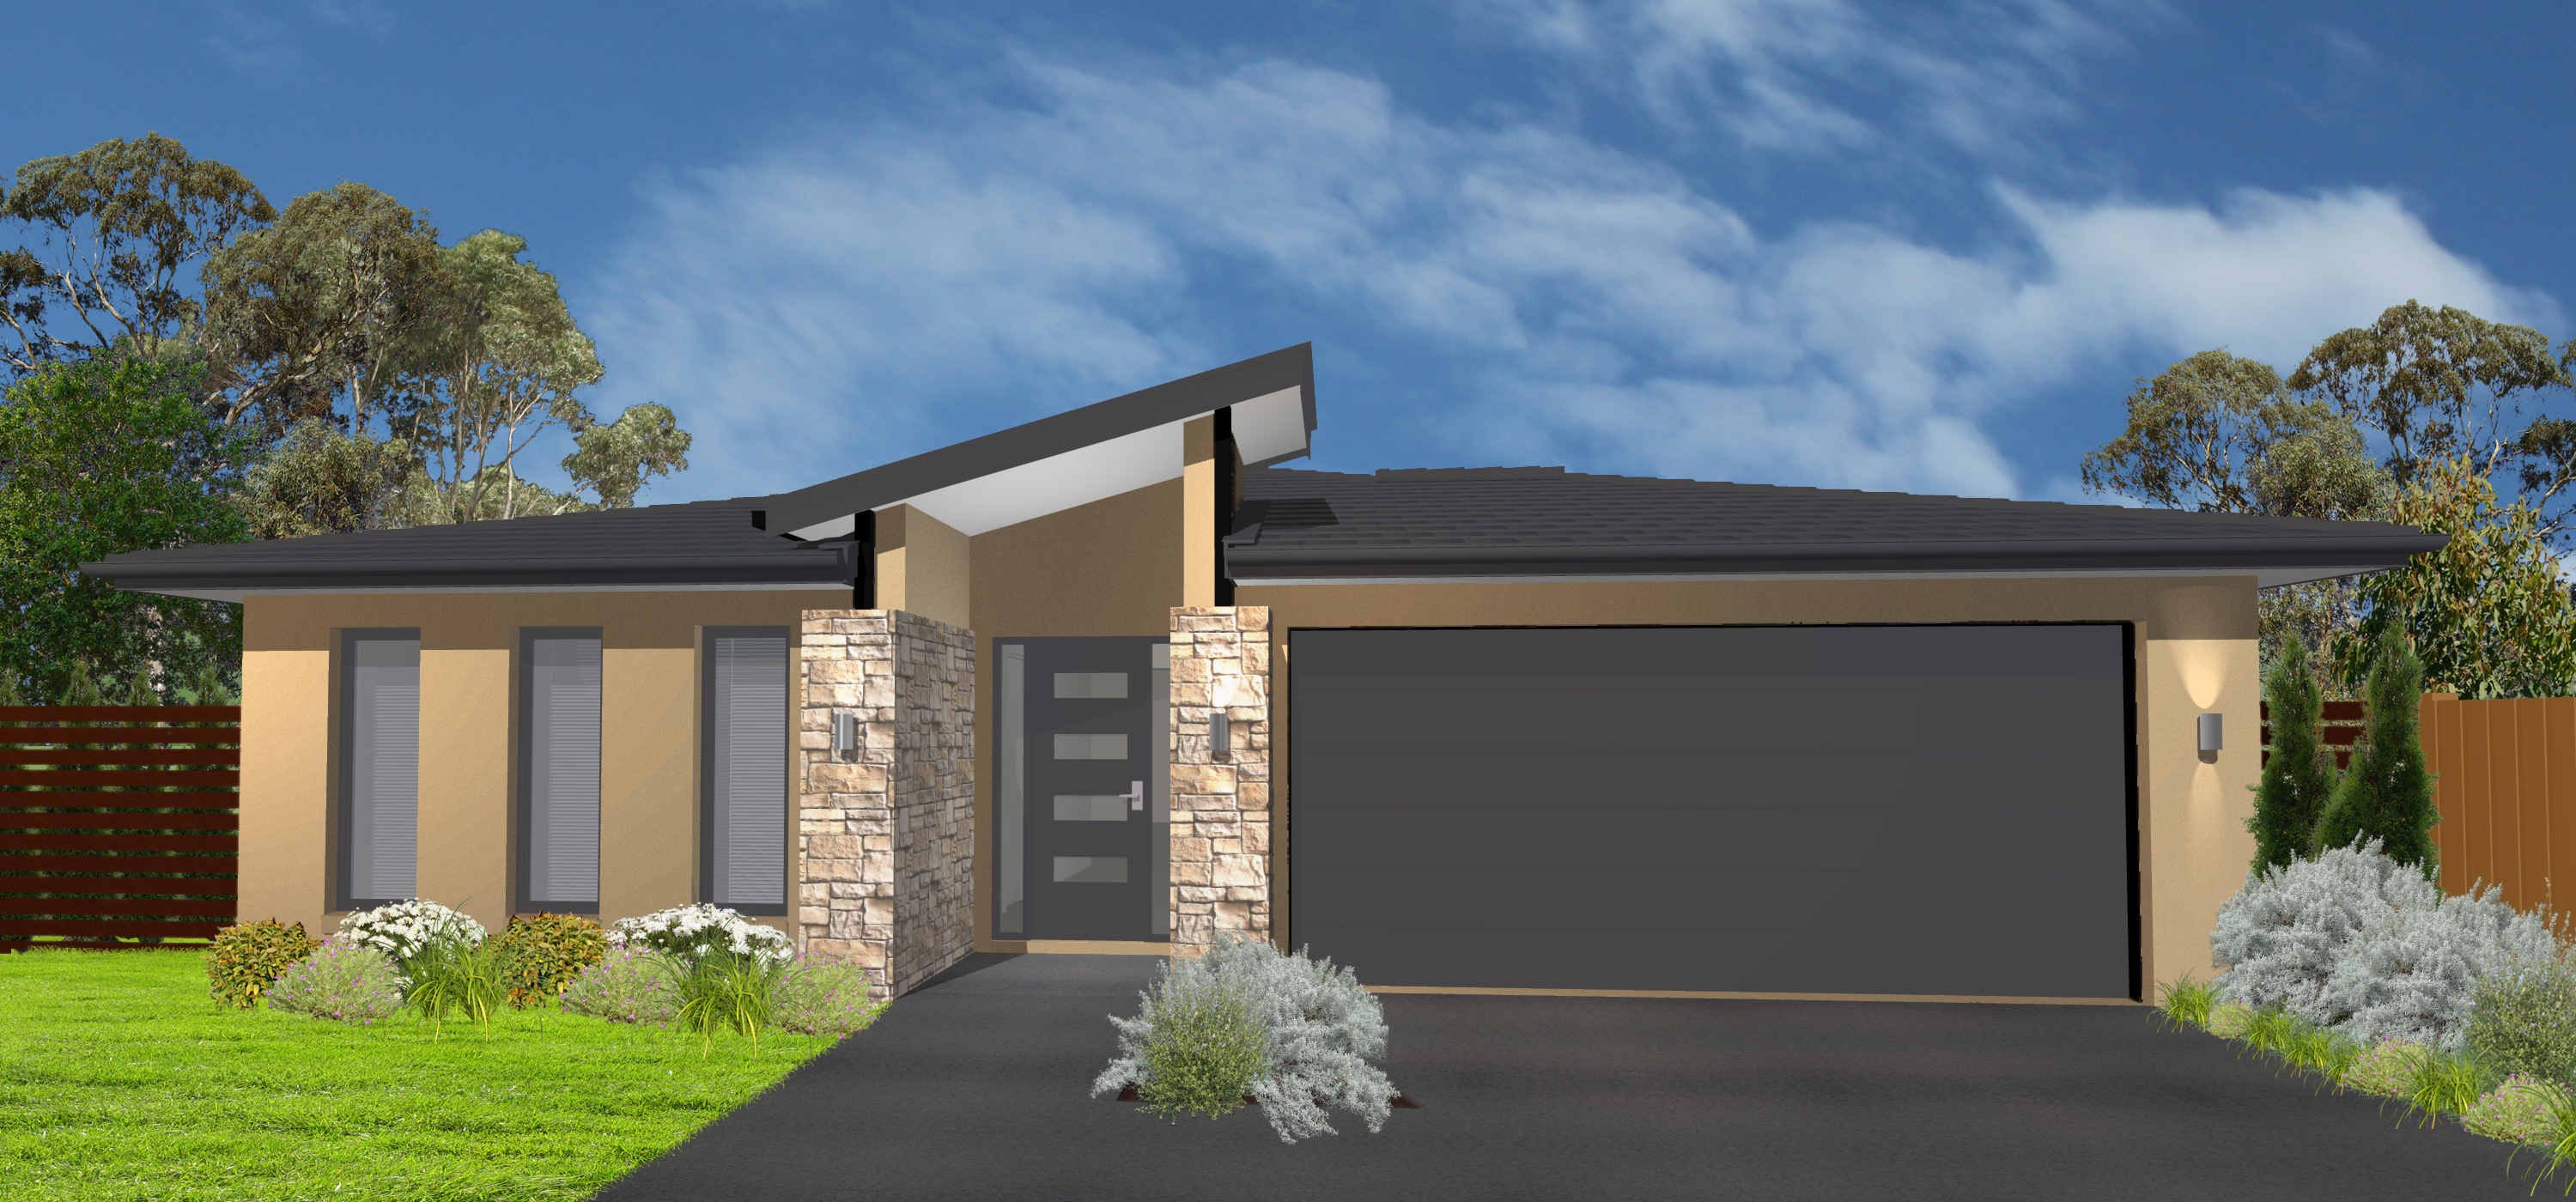 Lot 206 Mootwingee Cres Shepparton